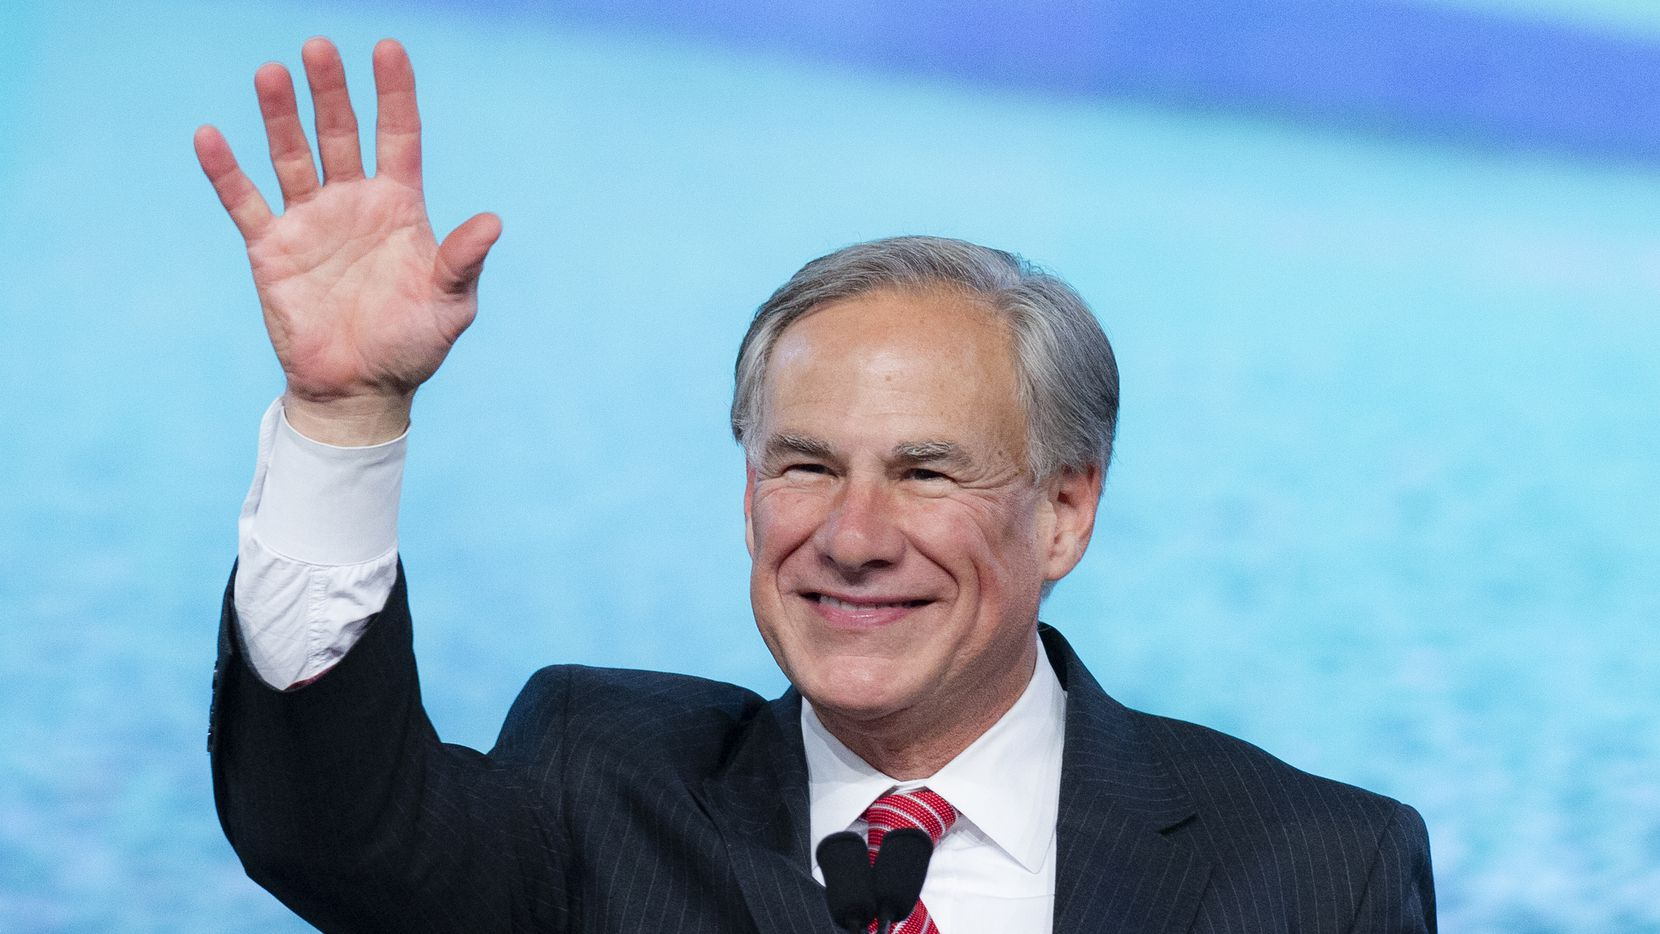 Texas Gov. Greg Abbott says he's not worried about investment and donation dollars leaving Texas due to the states' controversial abortion and voting legislation.